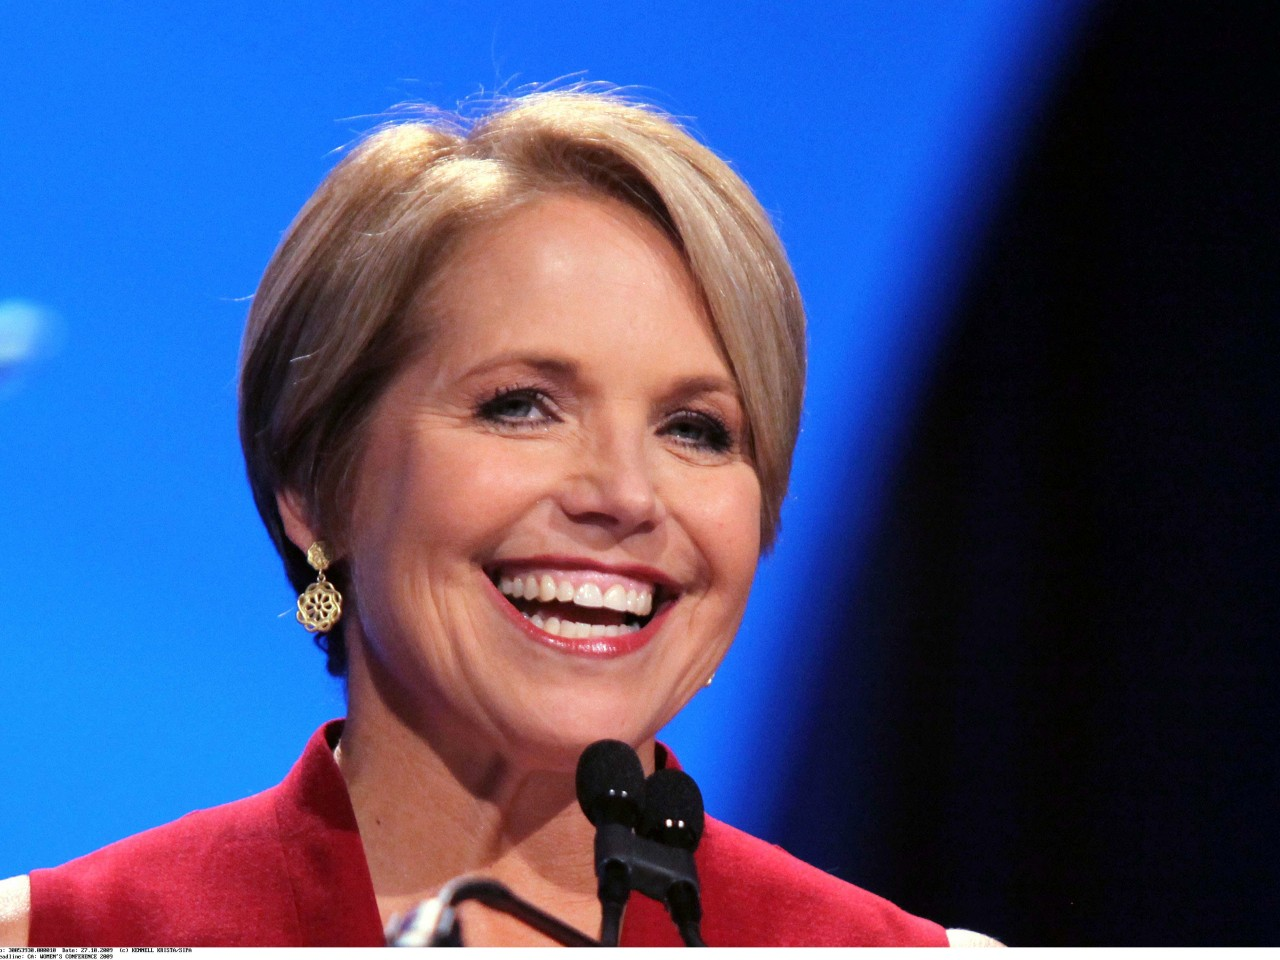 Katie Couric Photo Gallery - Page 1